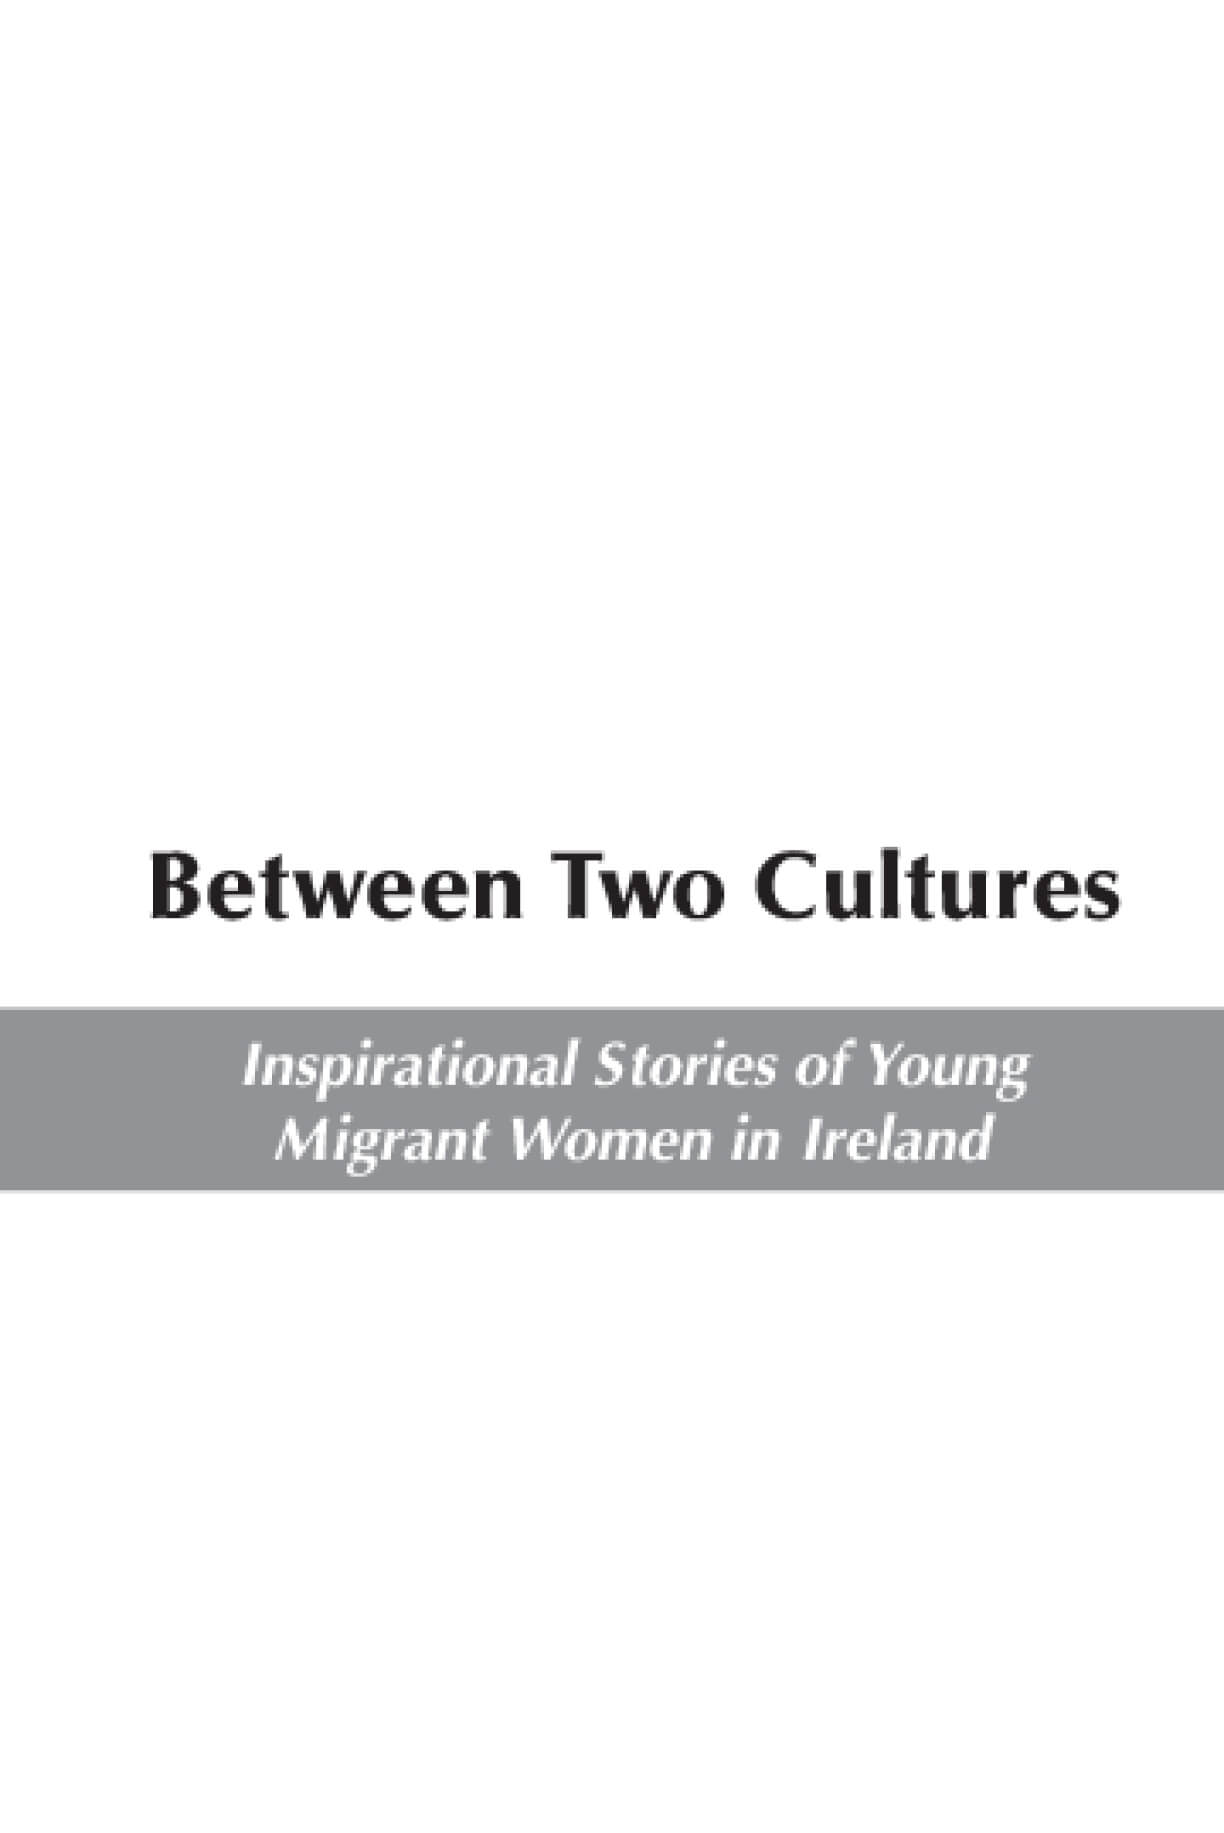 Between Two Cultures: Inspirational Stories of Young Migrant Women in Ireland